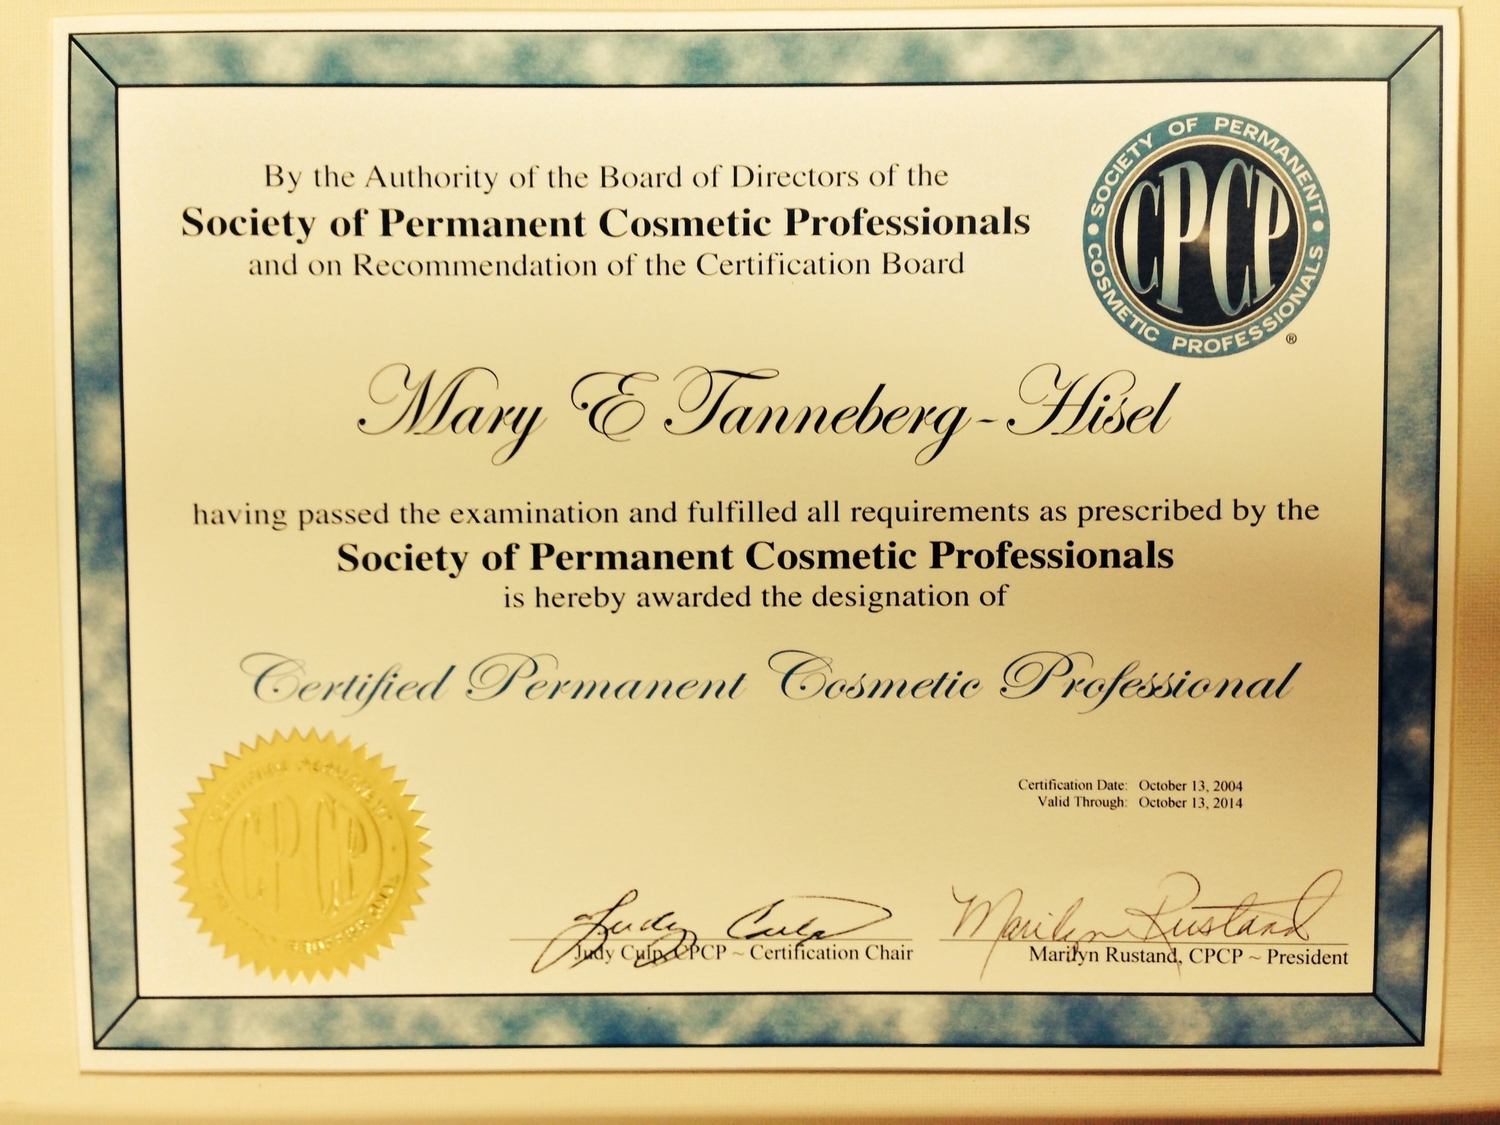 Certified Permanent Cosmetic Professional